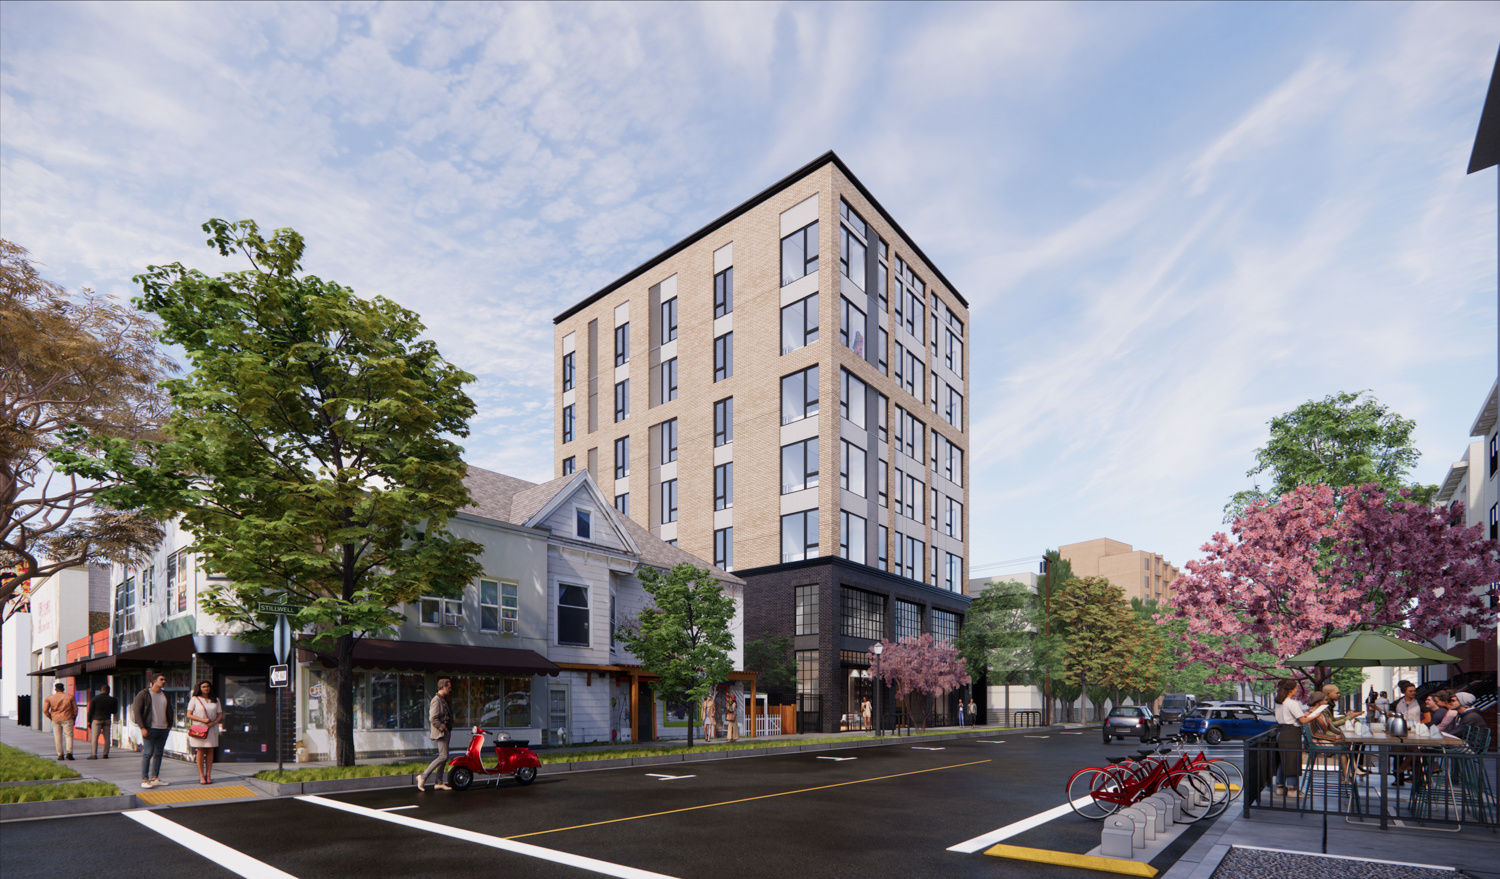 1116 18th Street updated design, rendering by C2K Architecture